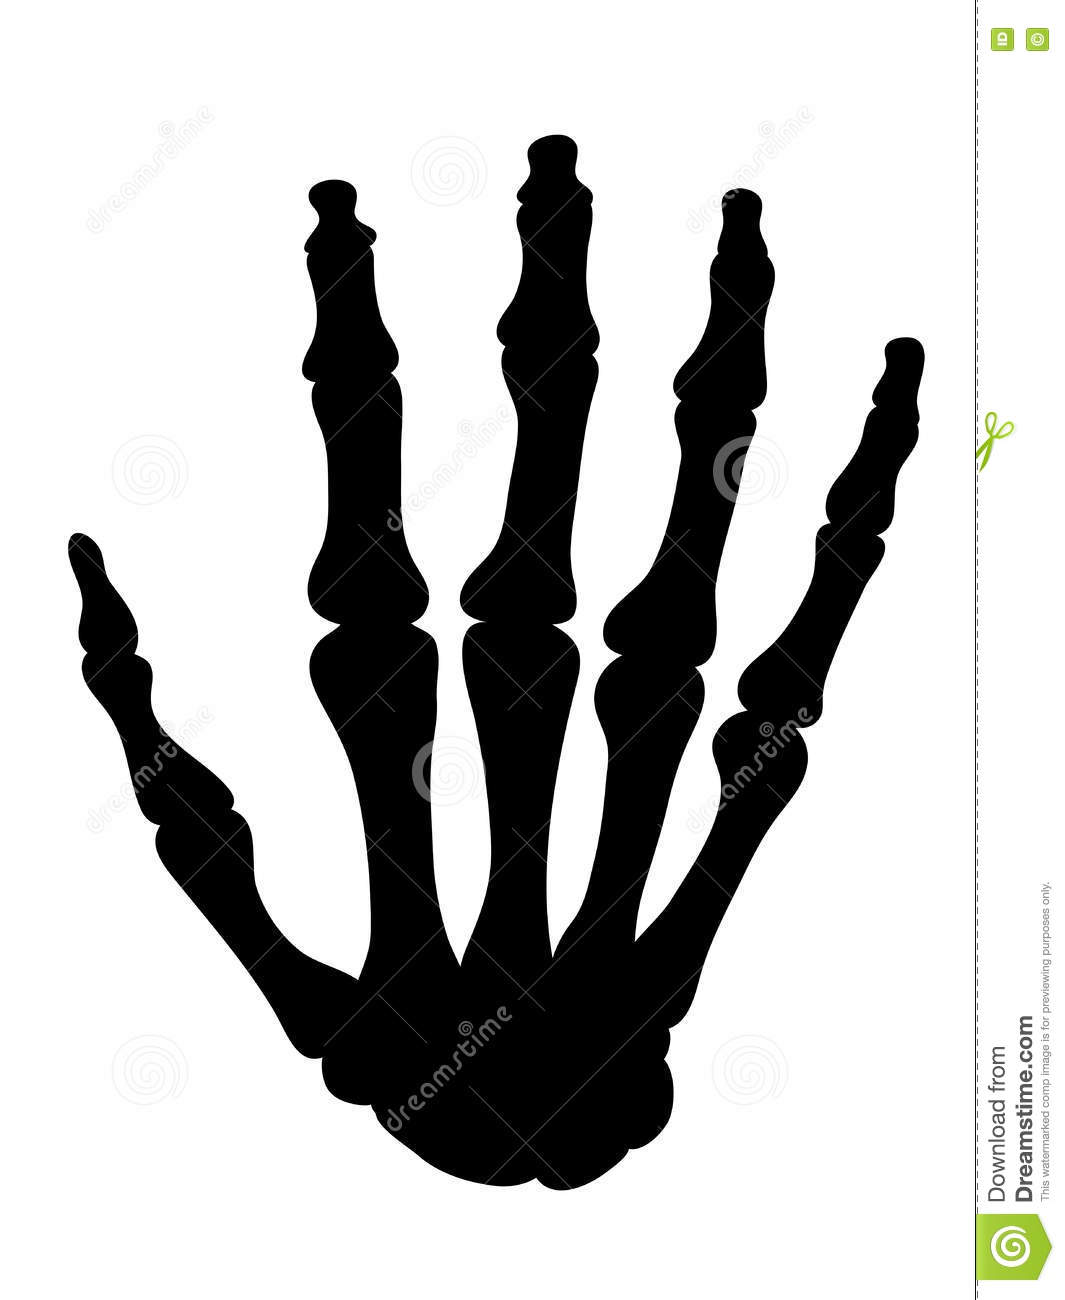 Black Silhouette Of The Bones Of The Hand Stock Vector